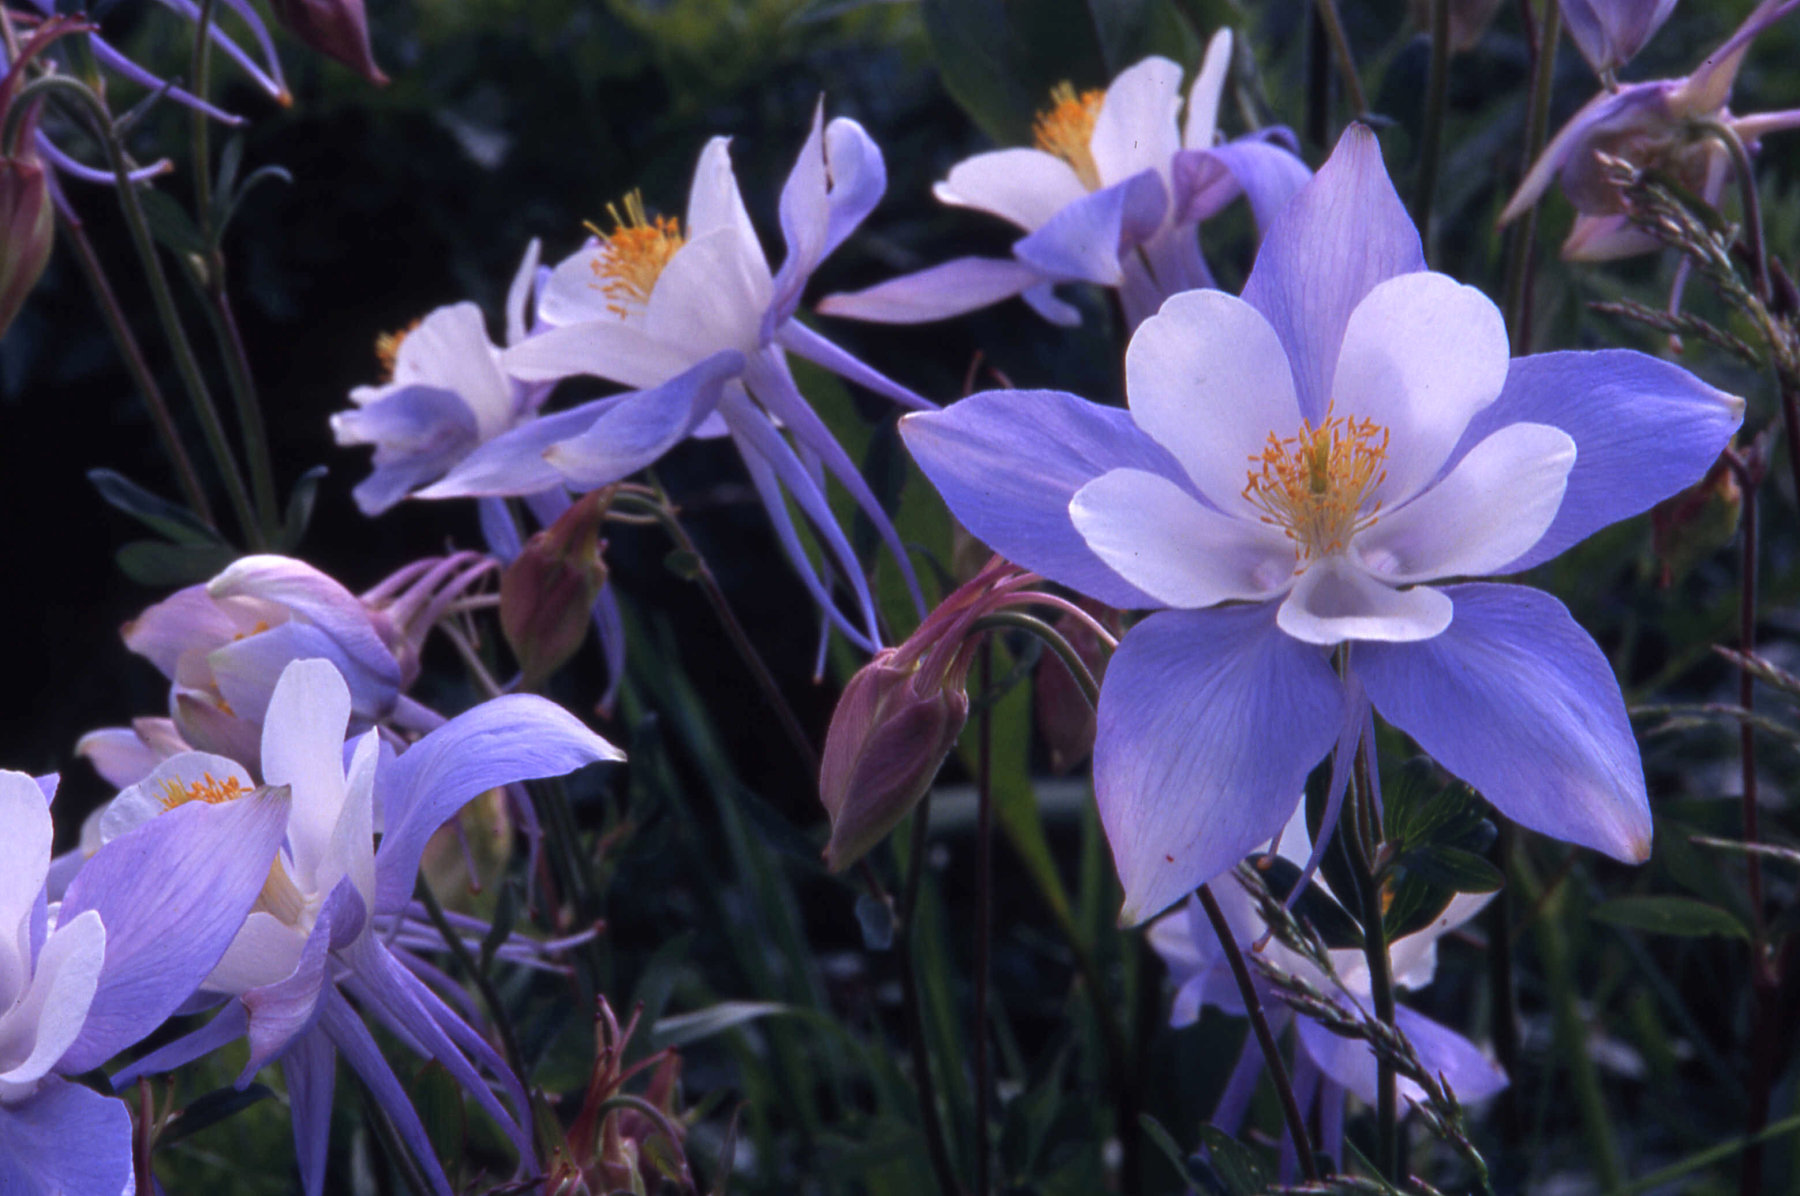 Columbines on Anthracite Mesa, northwest of Crested Butte, CO